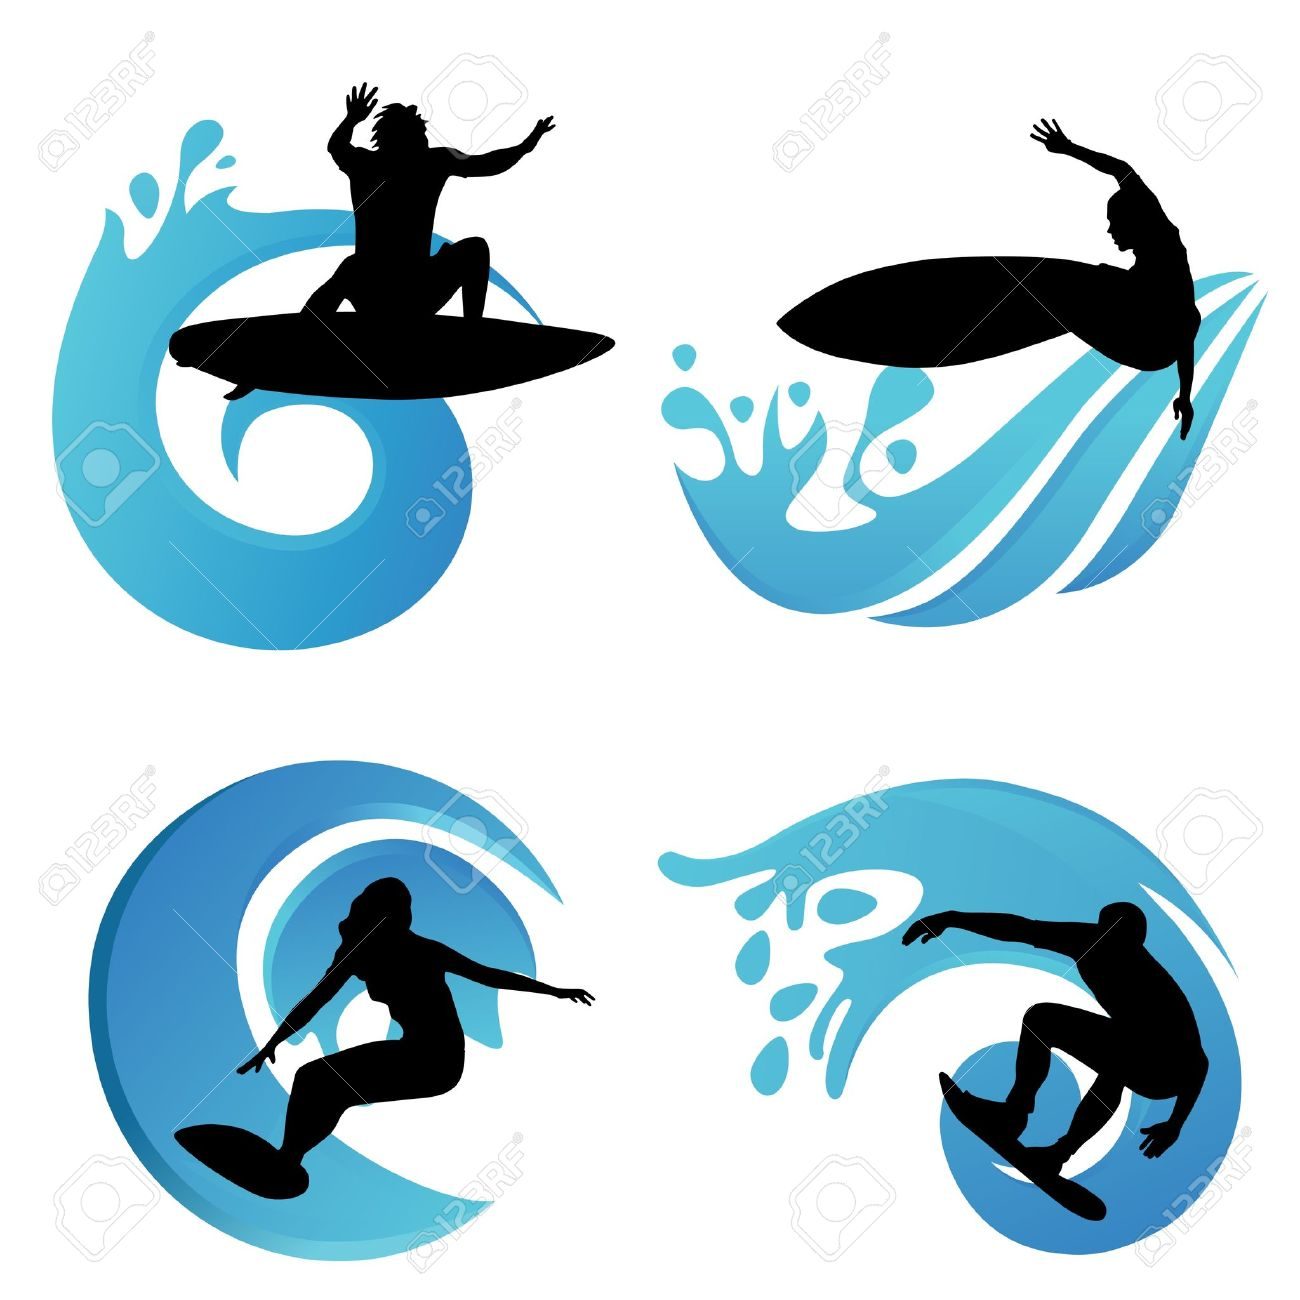 Surfing Wave Images & Stock Pictures. Royalty Free Surfing Wave ...